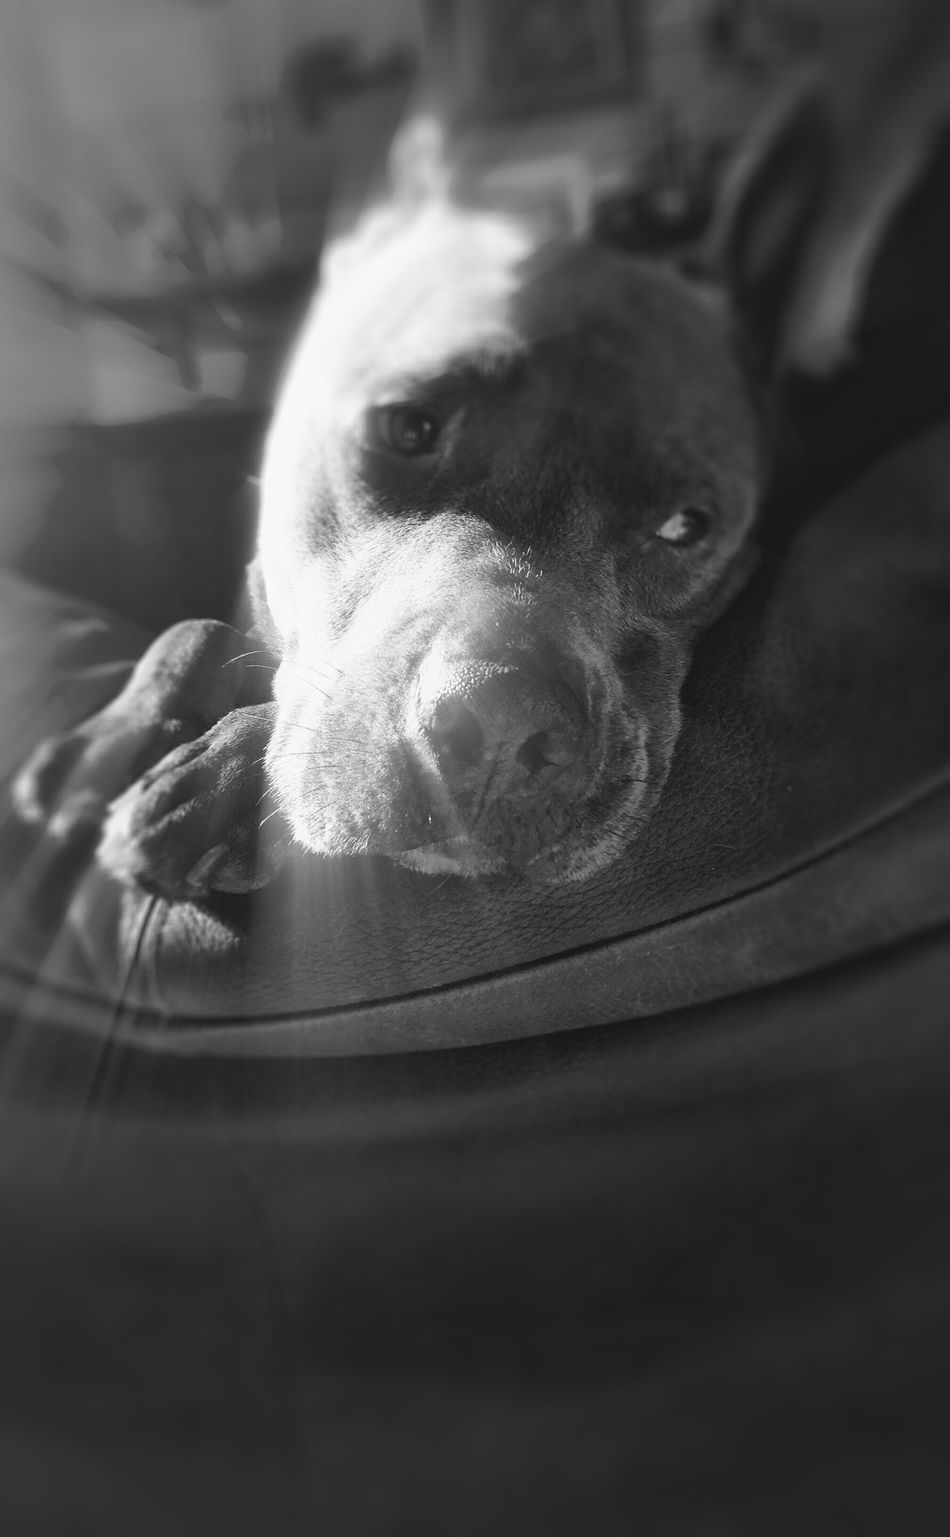 One of my Sunshines - Sharky - One Animal Pets Domestic Animals Animal Themes Dog Animal Head  Close-up Mammal Front View Relaxation Zoology Loyalty Animal Nose Focus On Foreground Pampered Pets Looking Animal Hair Animal pit bull PXL8IT Dog Love